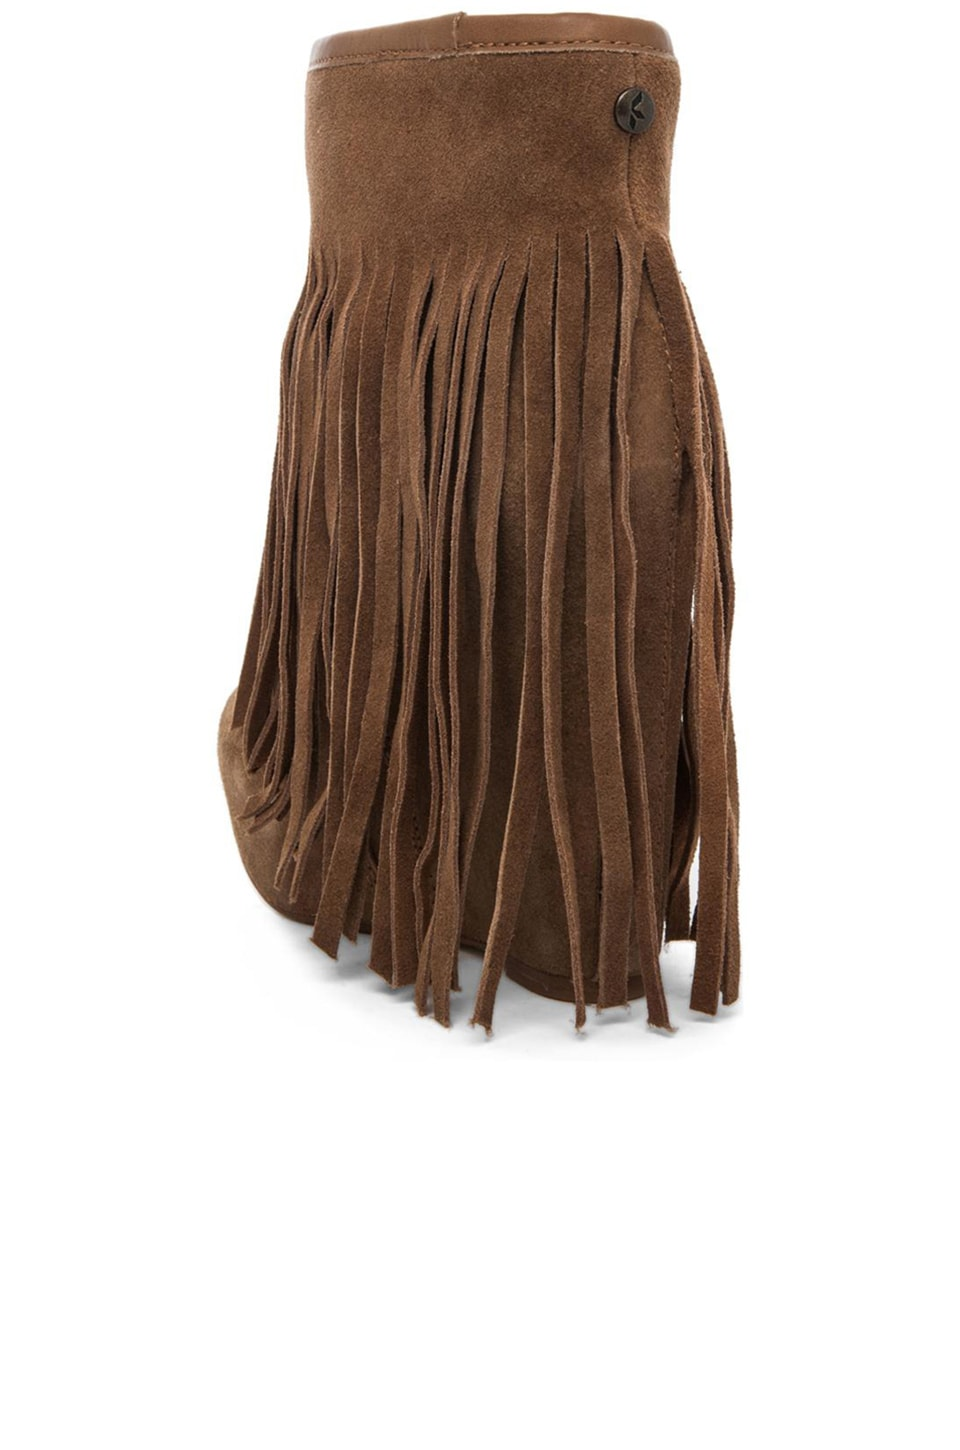 Koolaburra Veleta Fringe Wedge Boot in Chestnut